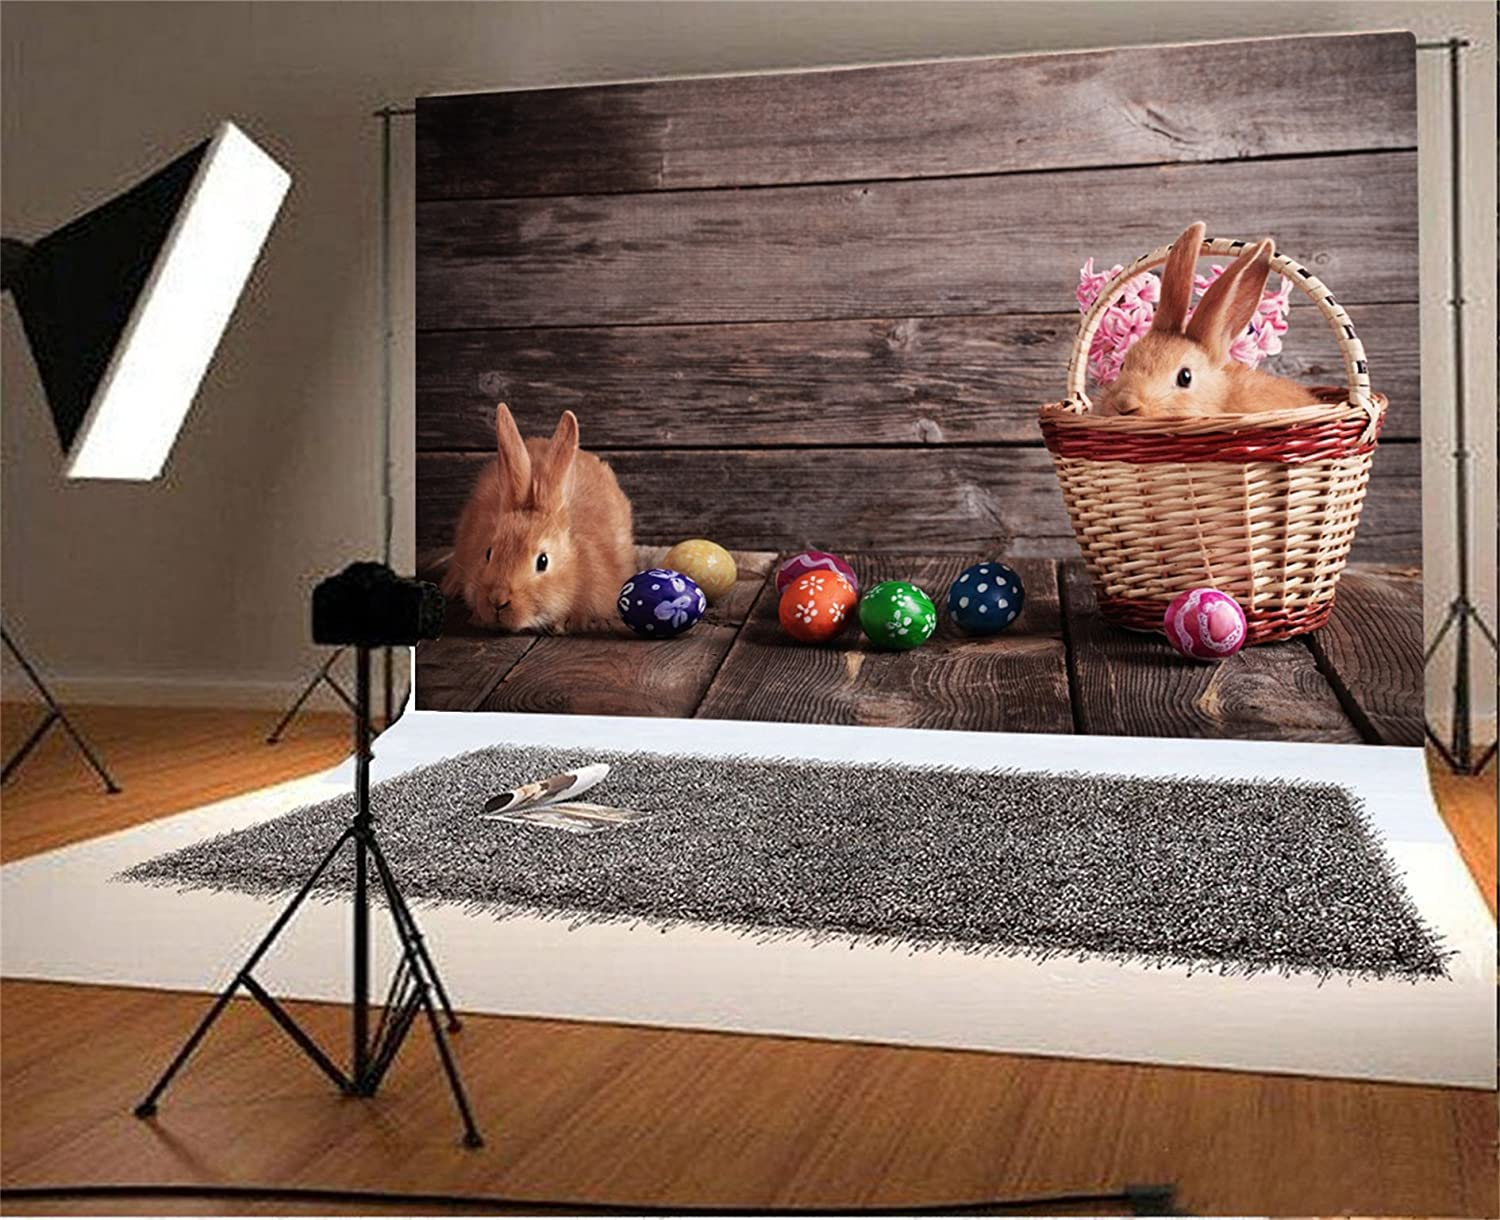 AOFOTO 5x3ft Easter Eggs and Rabbit Background Easter Bunny On Wooden Board Photography Backdrop Vintage Rustic Photo Studio Props Kid Baby Newborn Infant Artistic Portrait Vinyl Wallpaper